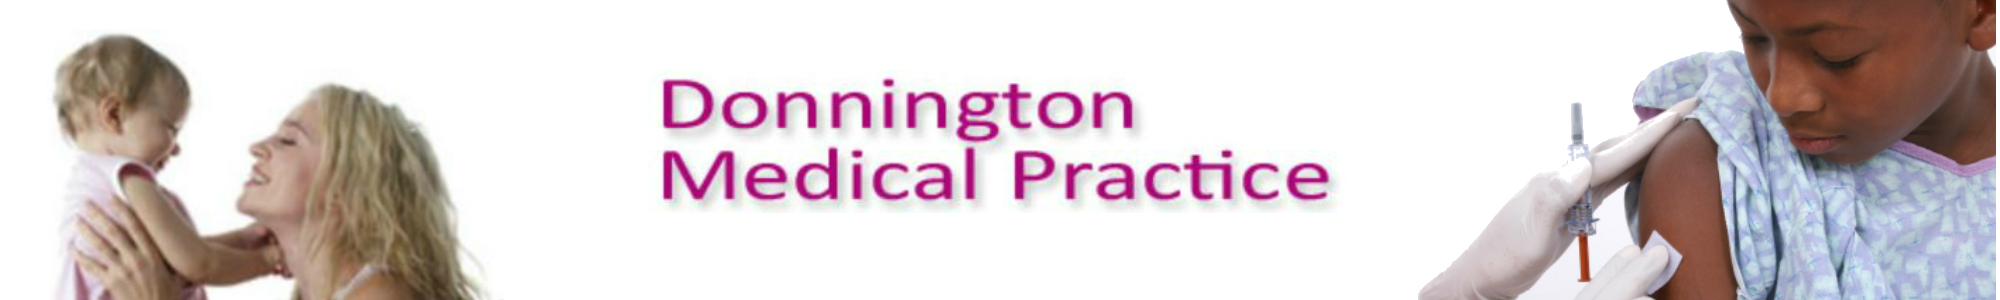 Donnington Medical Practice